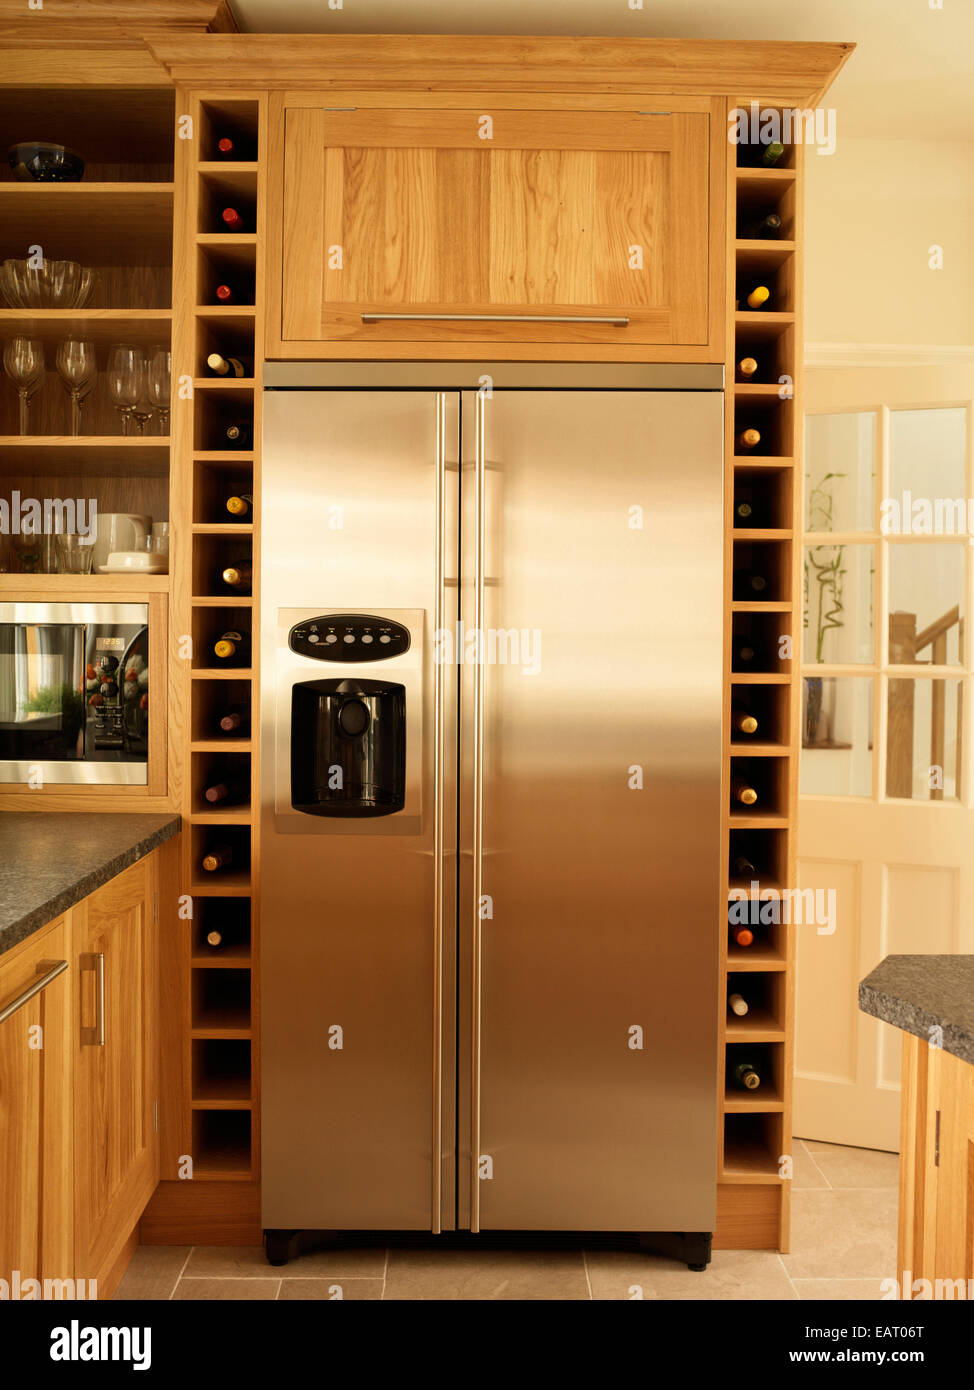 Stainless steel fridge and built in wine rack storage in kitchen ...